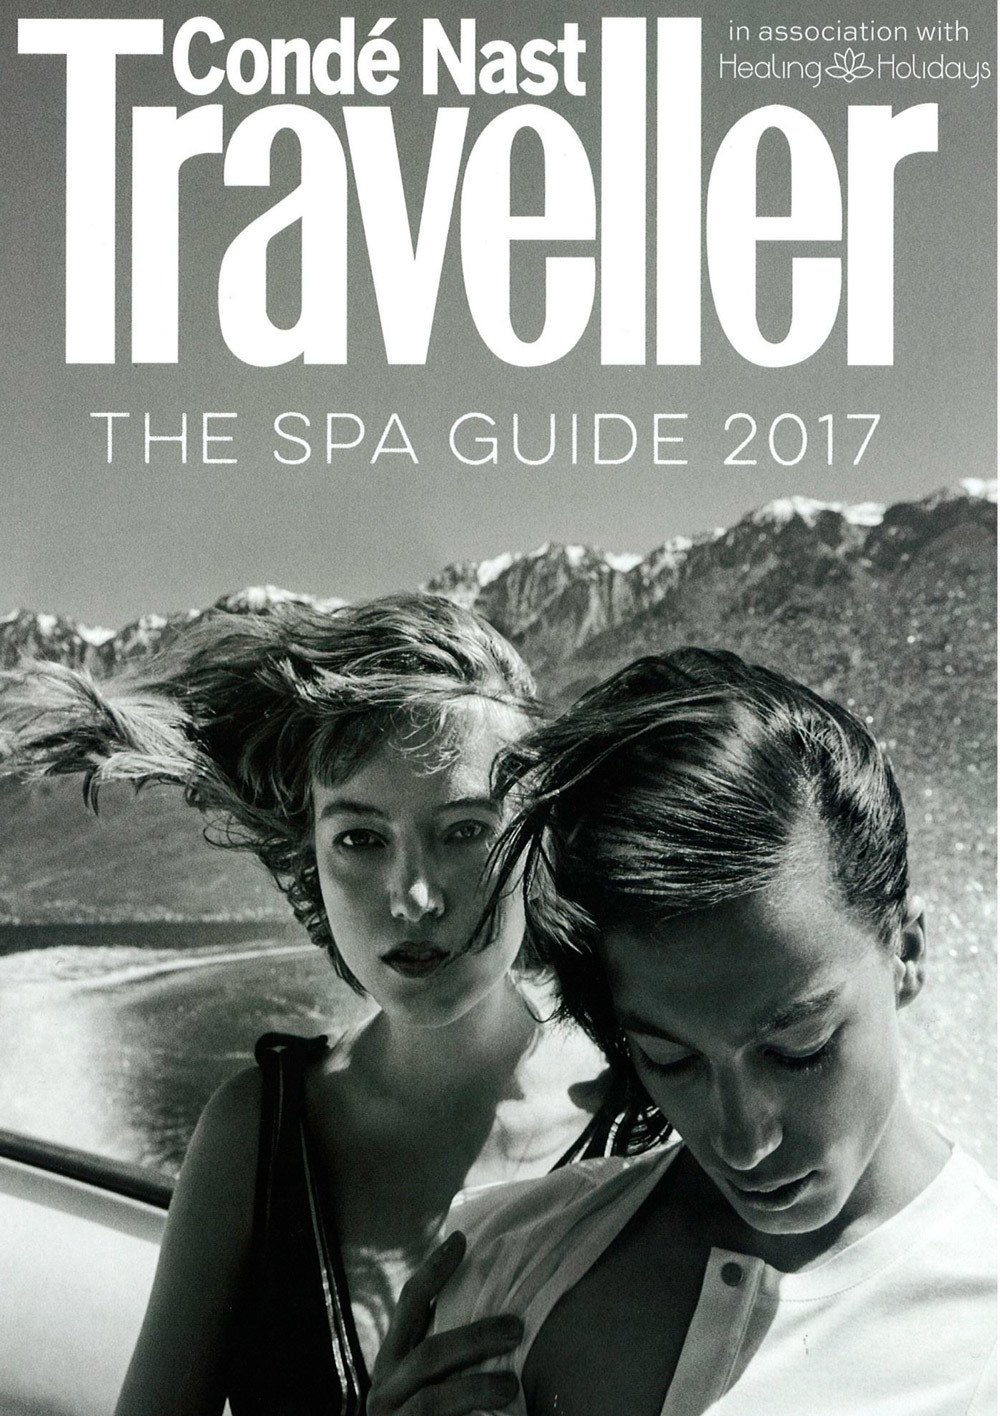 Conde Nast Traveller Spa Guide UK